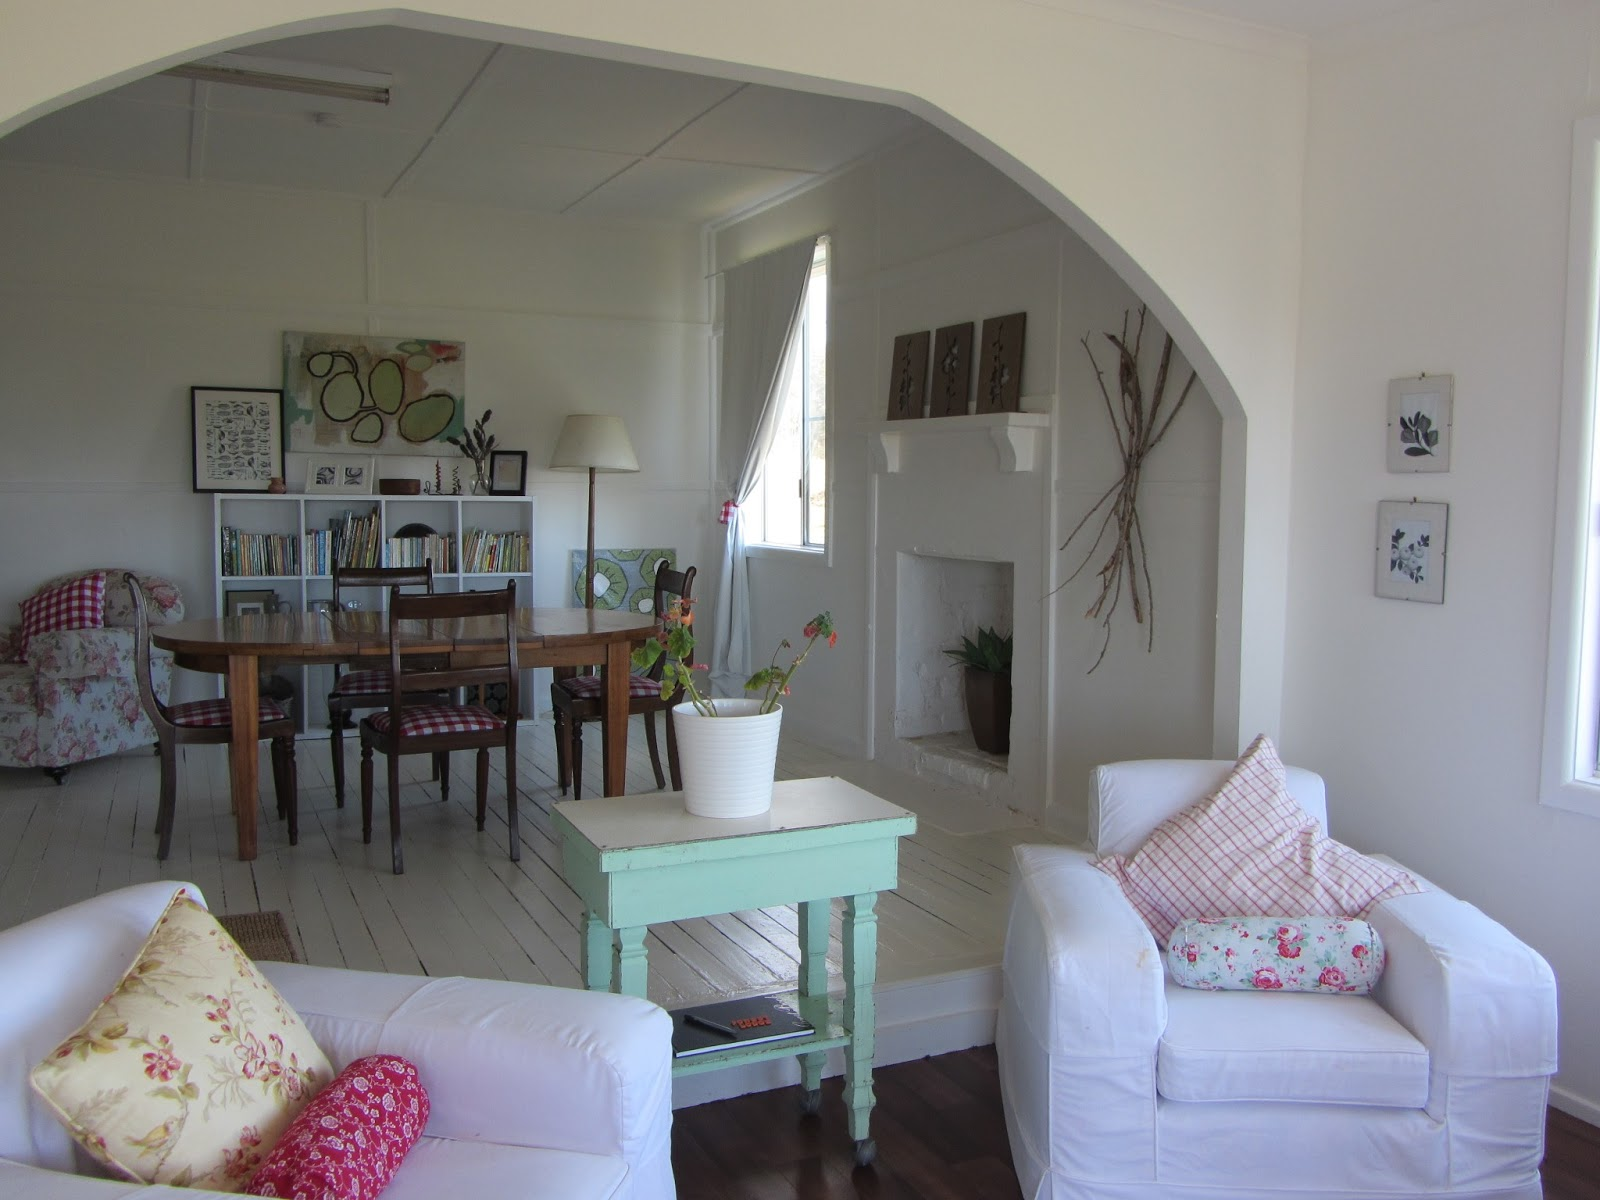 Thom haus handmade a budget living room renovation - Living room makeovers before and after ...